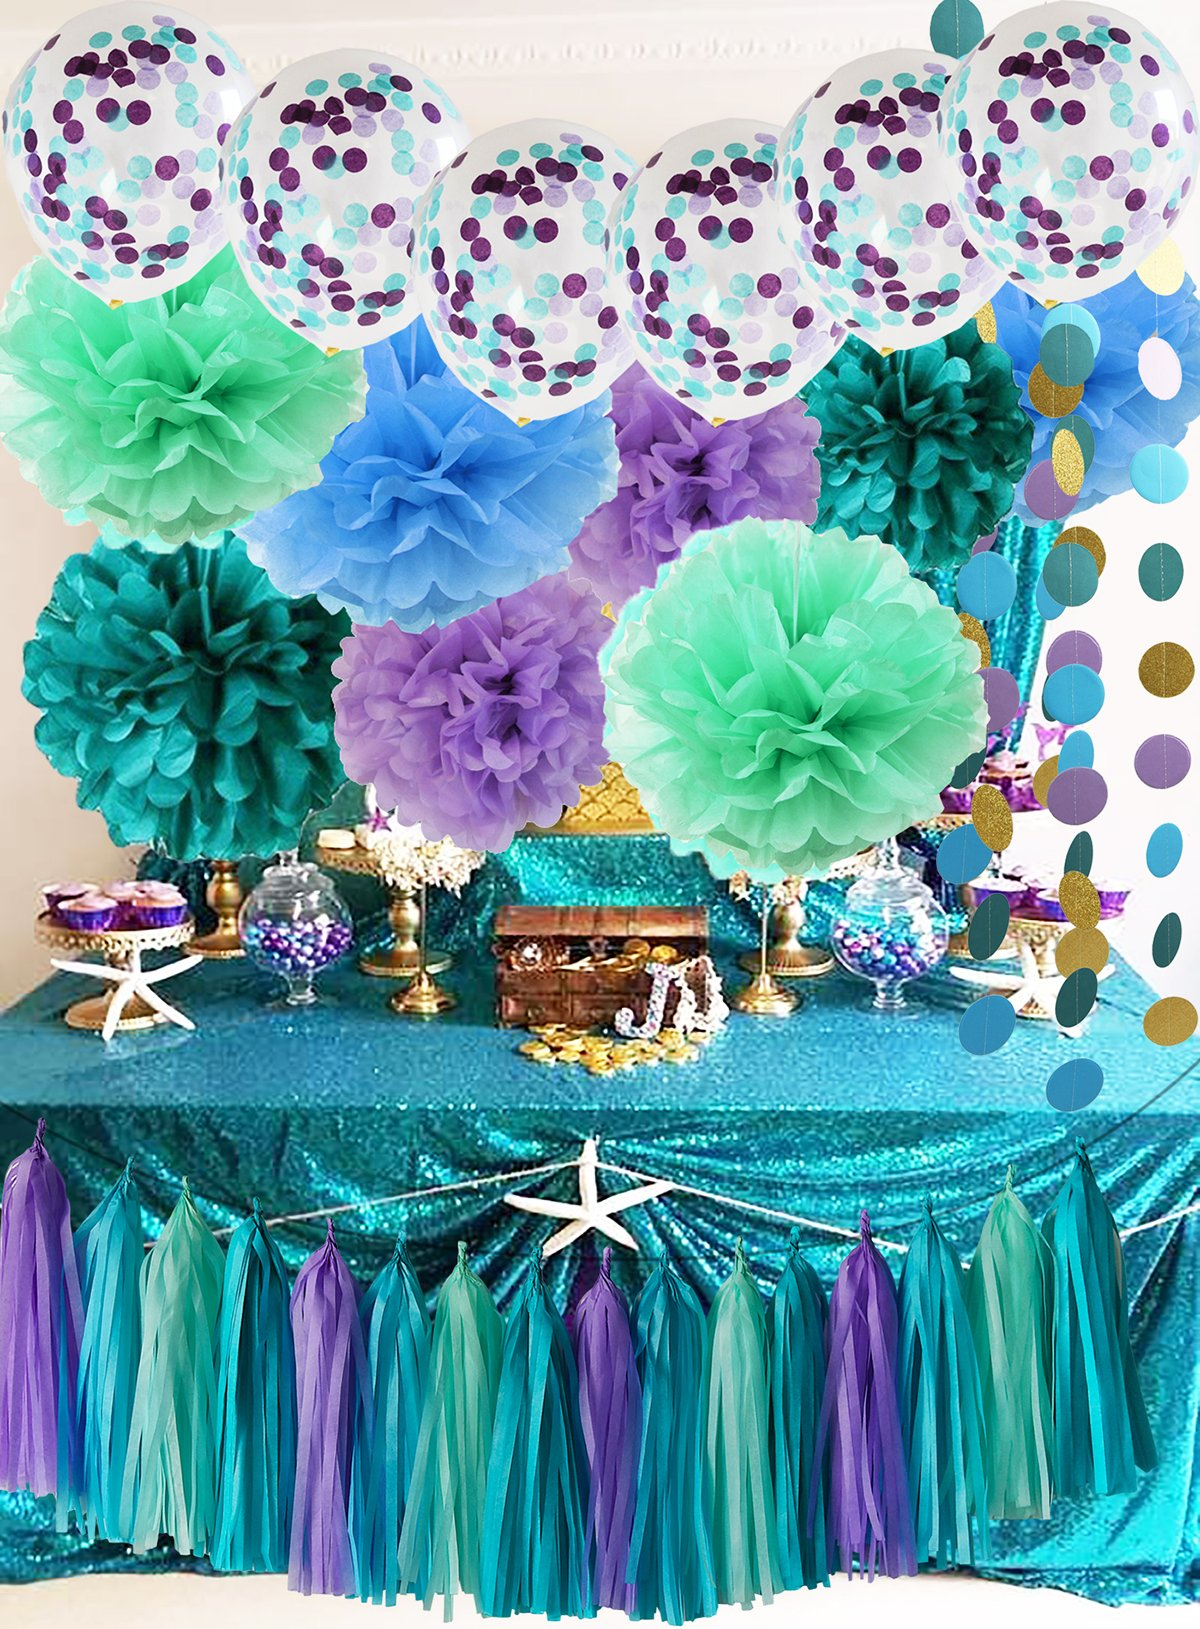 under the sea party suppliesmermaid party decorations teal purple blue mint tissue pom poms first birthday decorations baby shower decorations mermaid